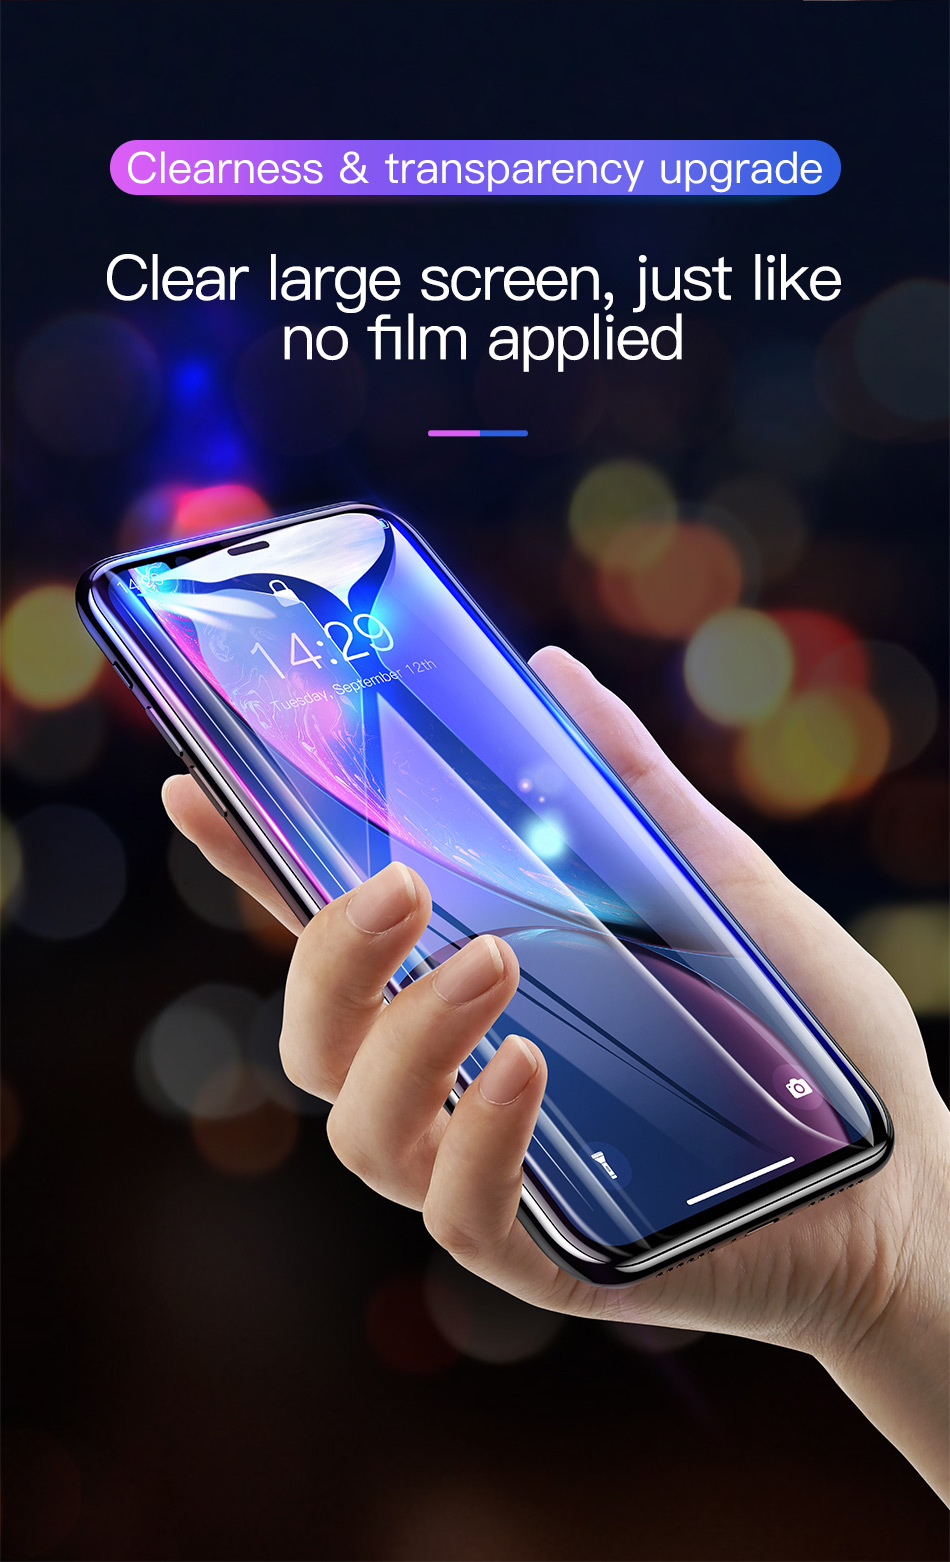 Baseus 0.3mm Full Coverage Tempered Glass For iPhone Xs Xs Max XR 2018 Screen Protector Thin Protective Glass For iPhone X Xs XR H4e982d83663e485fa2879cdb30ac27431